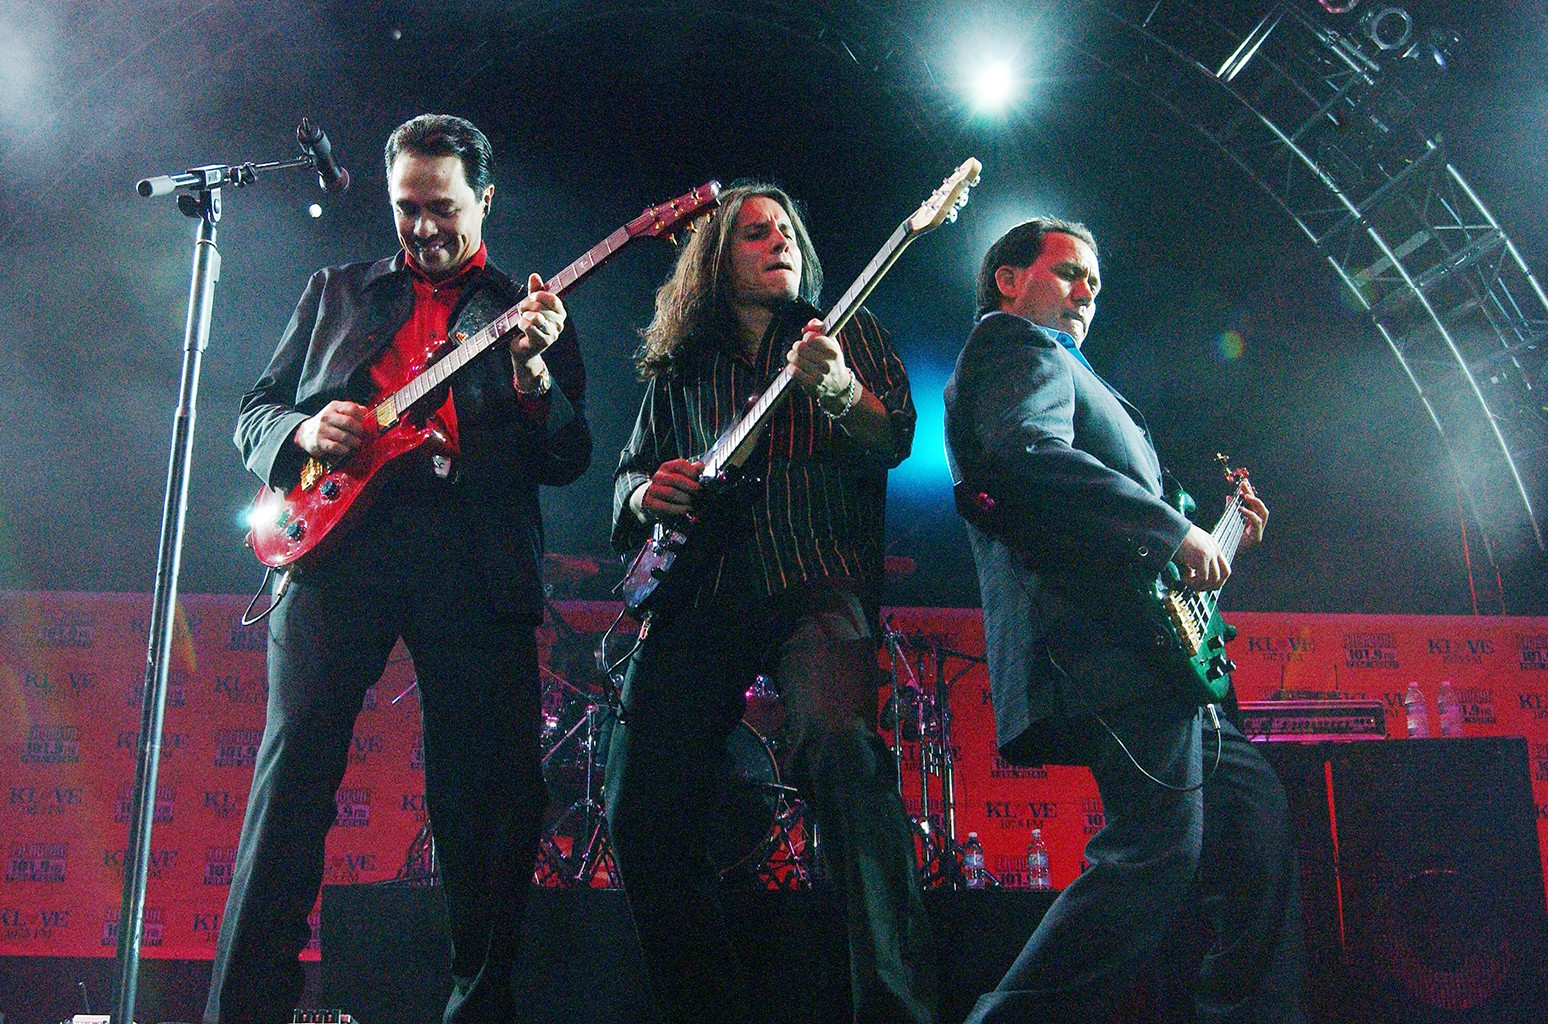 Los Temerarios Draco Rosa More Announced As Latin Songwriters Hall Of Fame 2016 Inductees Billboard Los temerarios radio plays music from los temerarios and similar artists. los temerarios draco rosa more